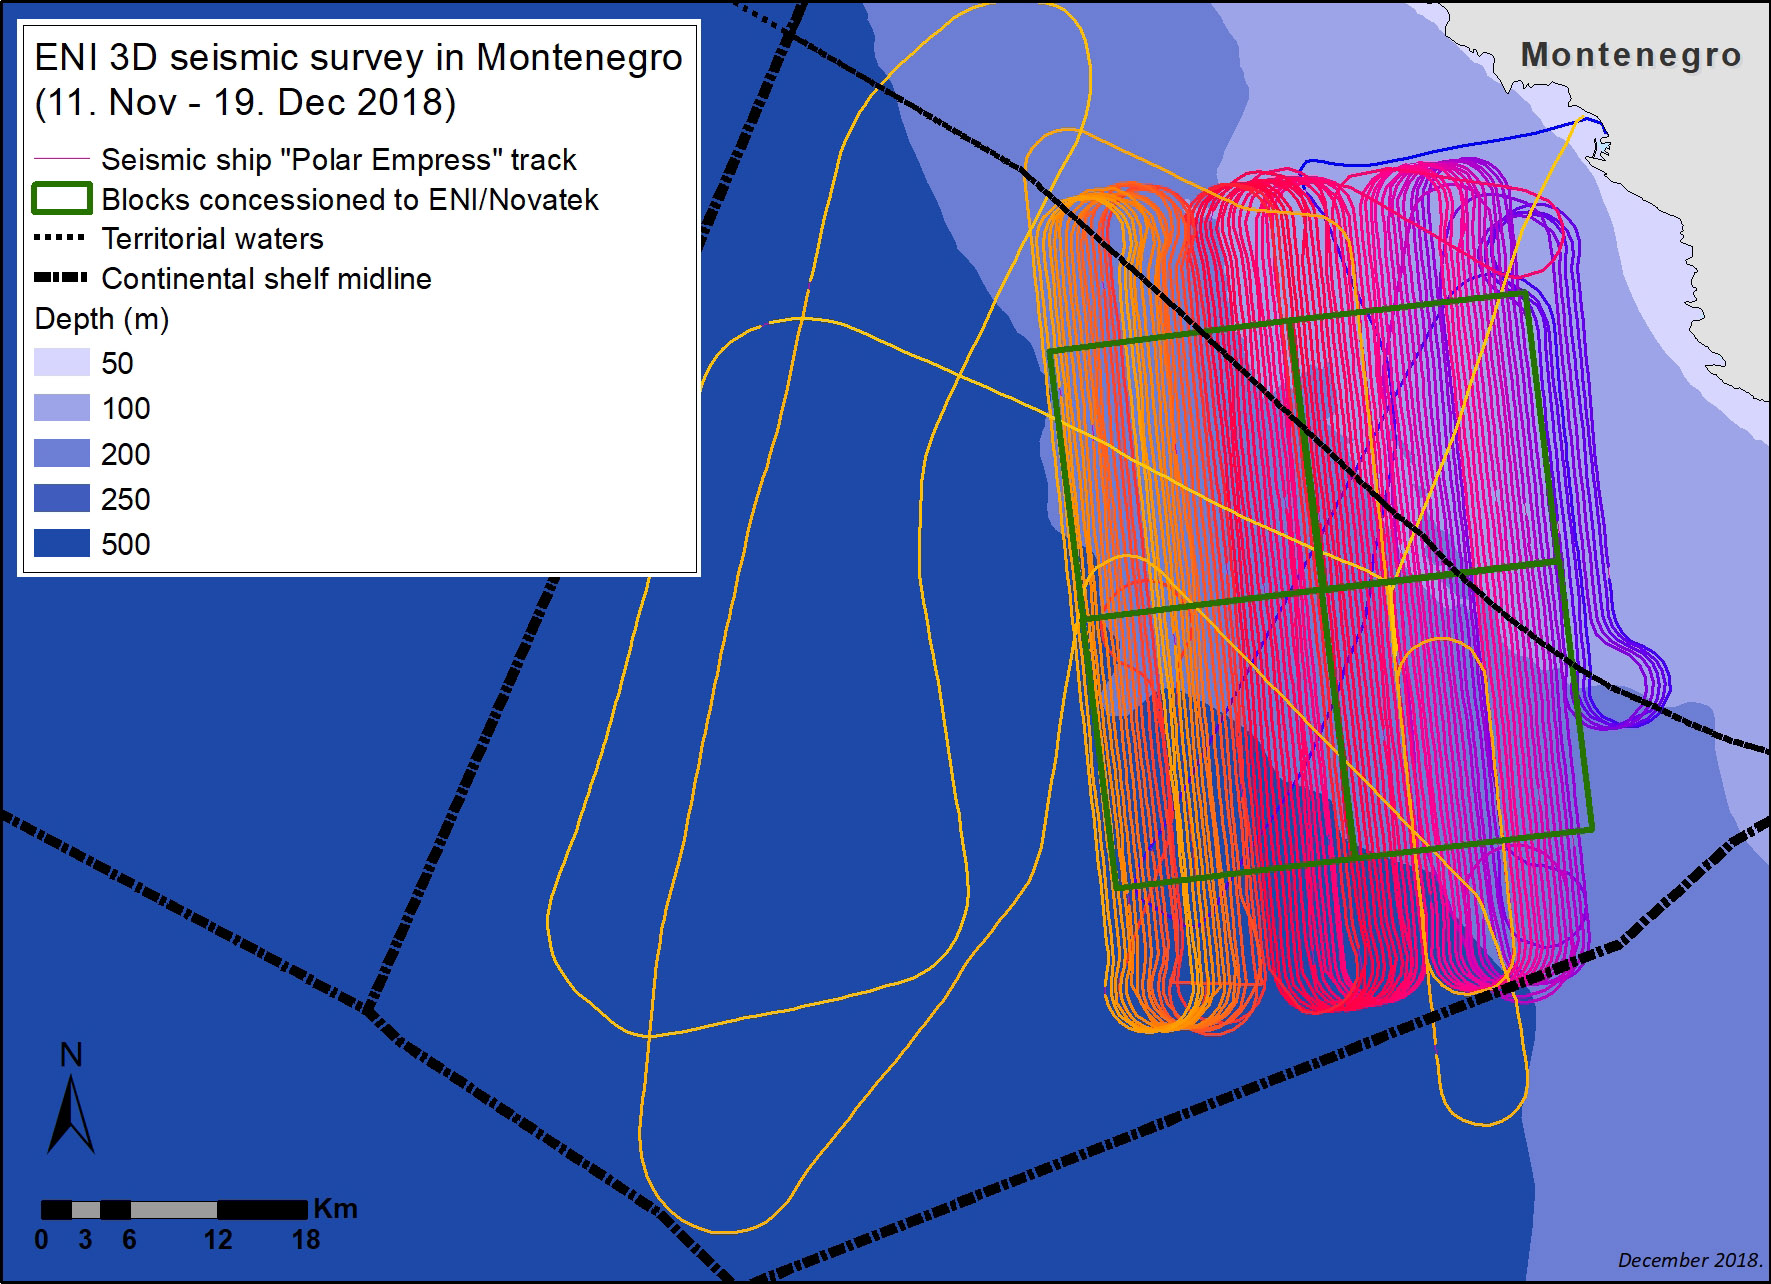 hight resolution of the first 3d seismic survey of the sea bed in montenegro has ended the ship polar empress carrying out the survey started from the harbour of bar on the